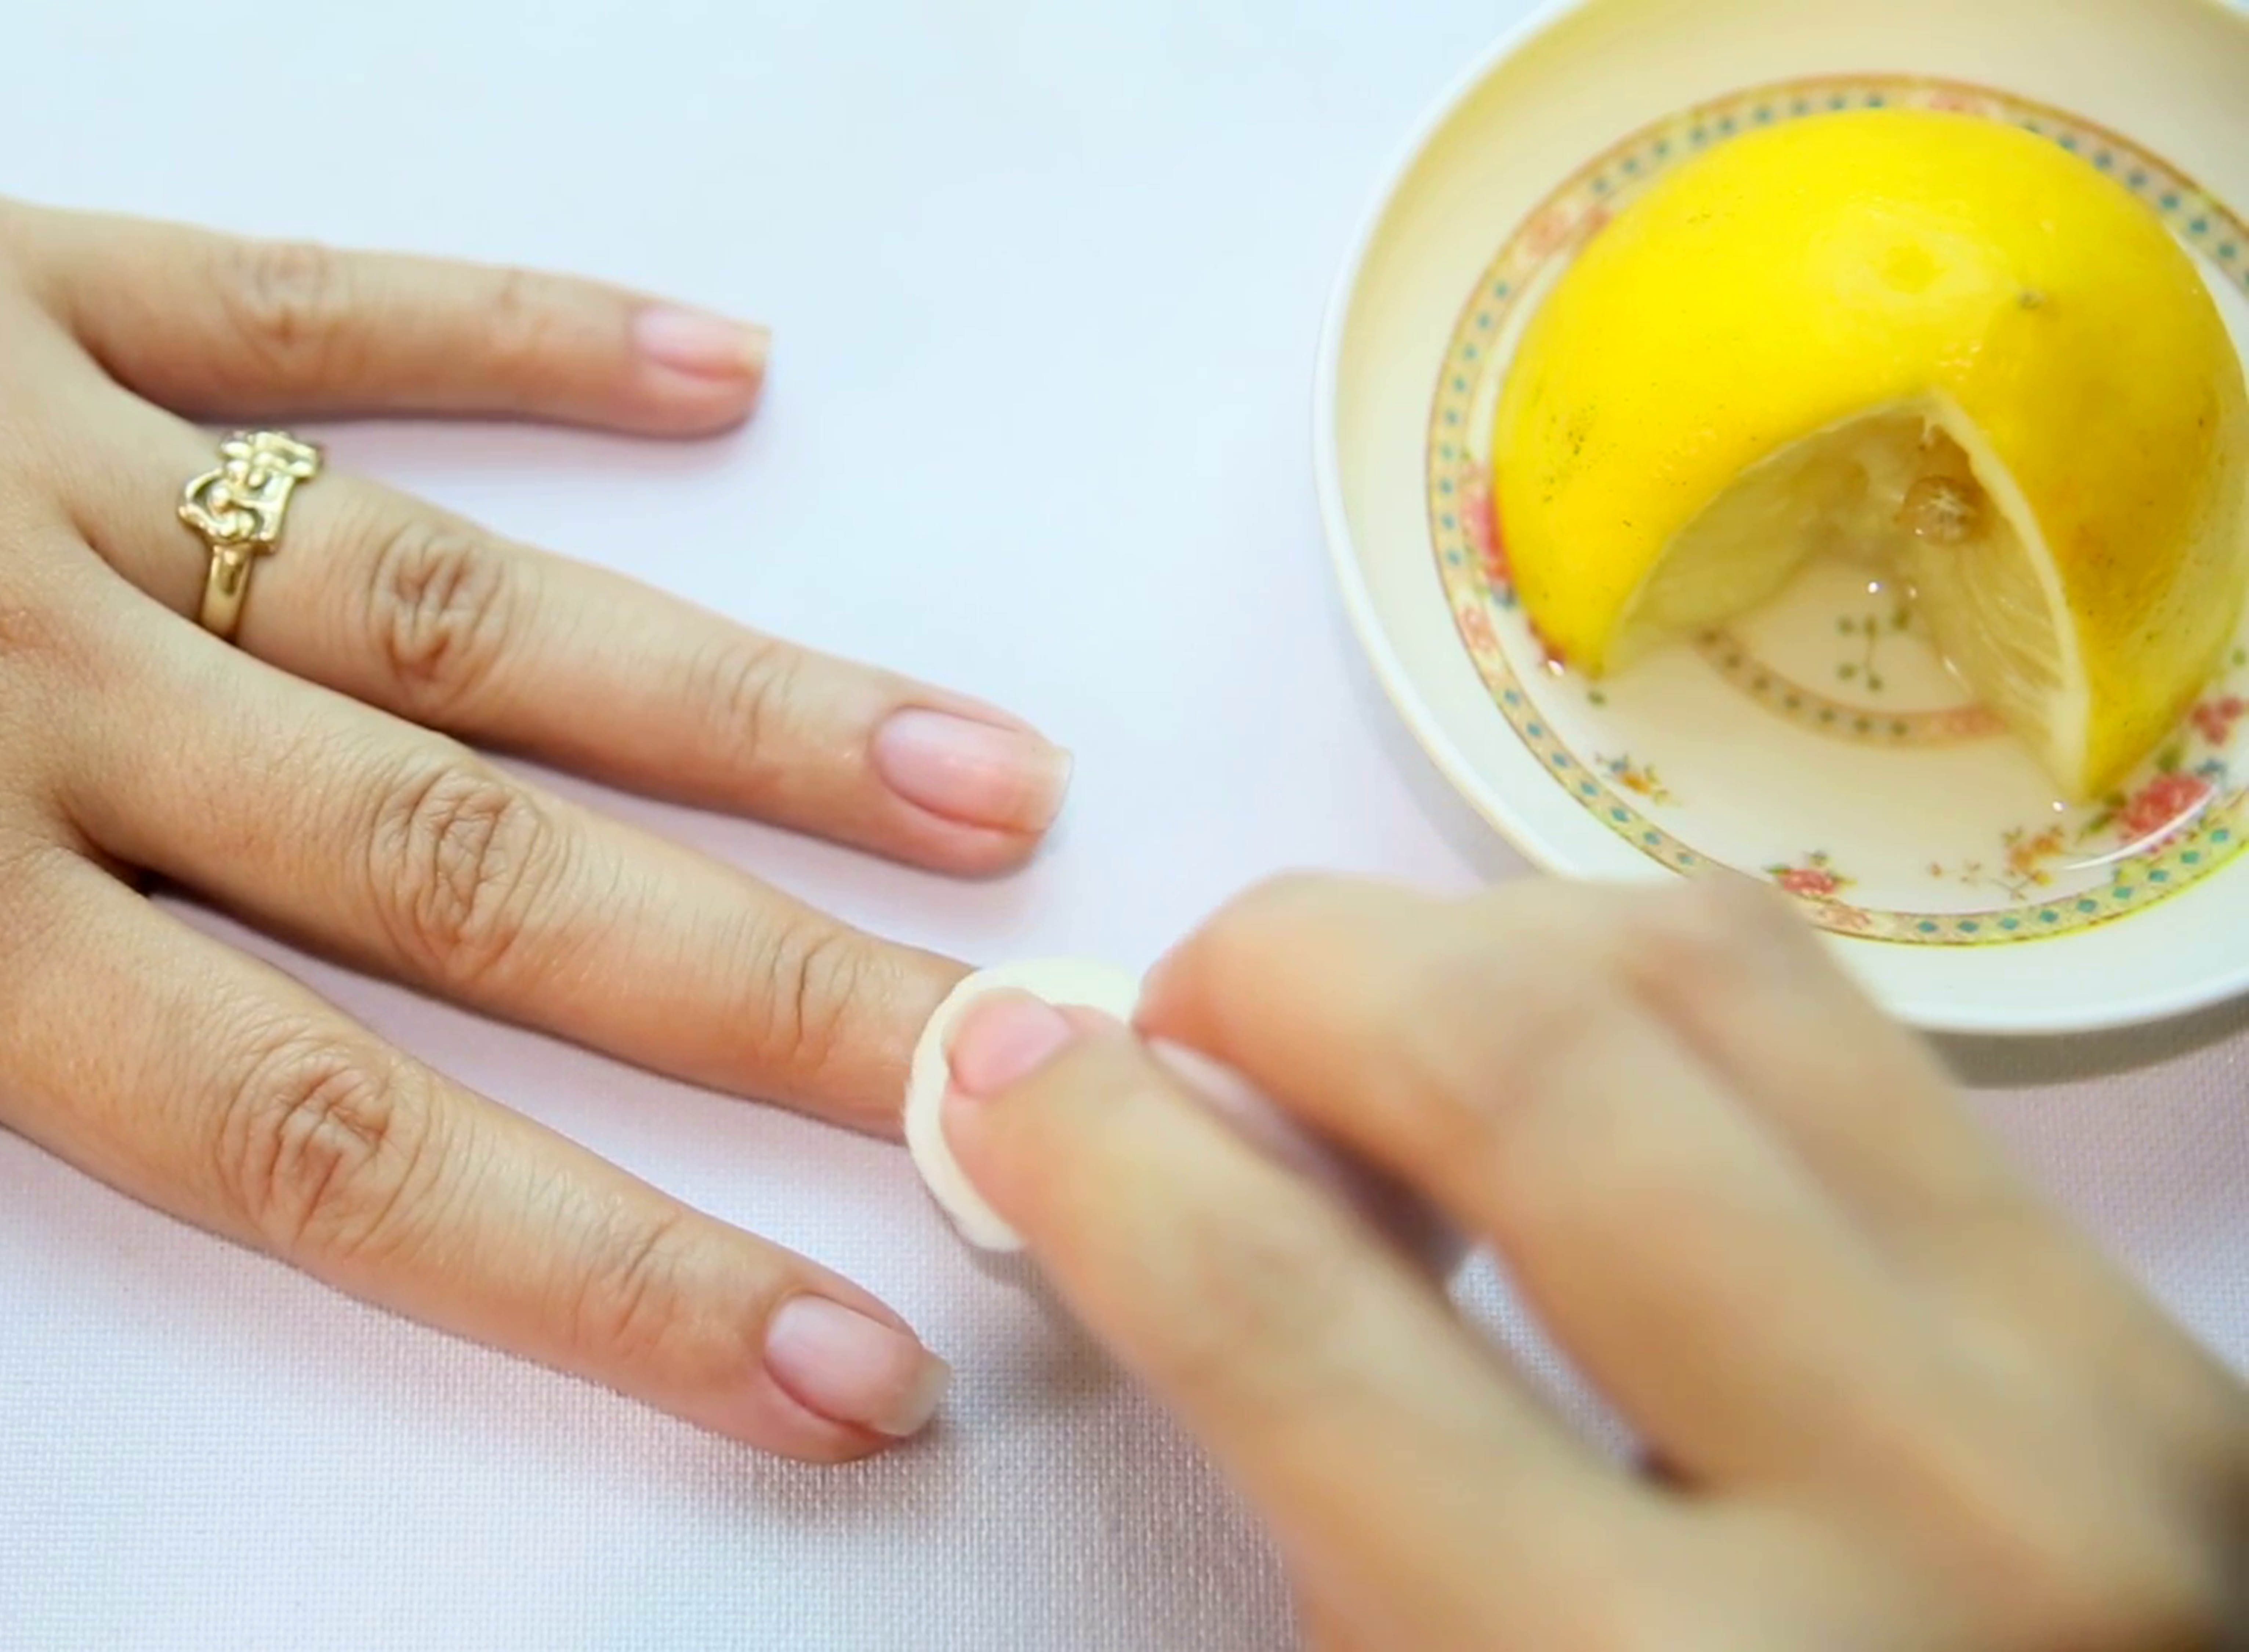 How To Care For Your Nails At Home 4 S With Pictures